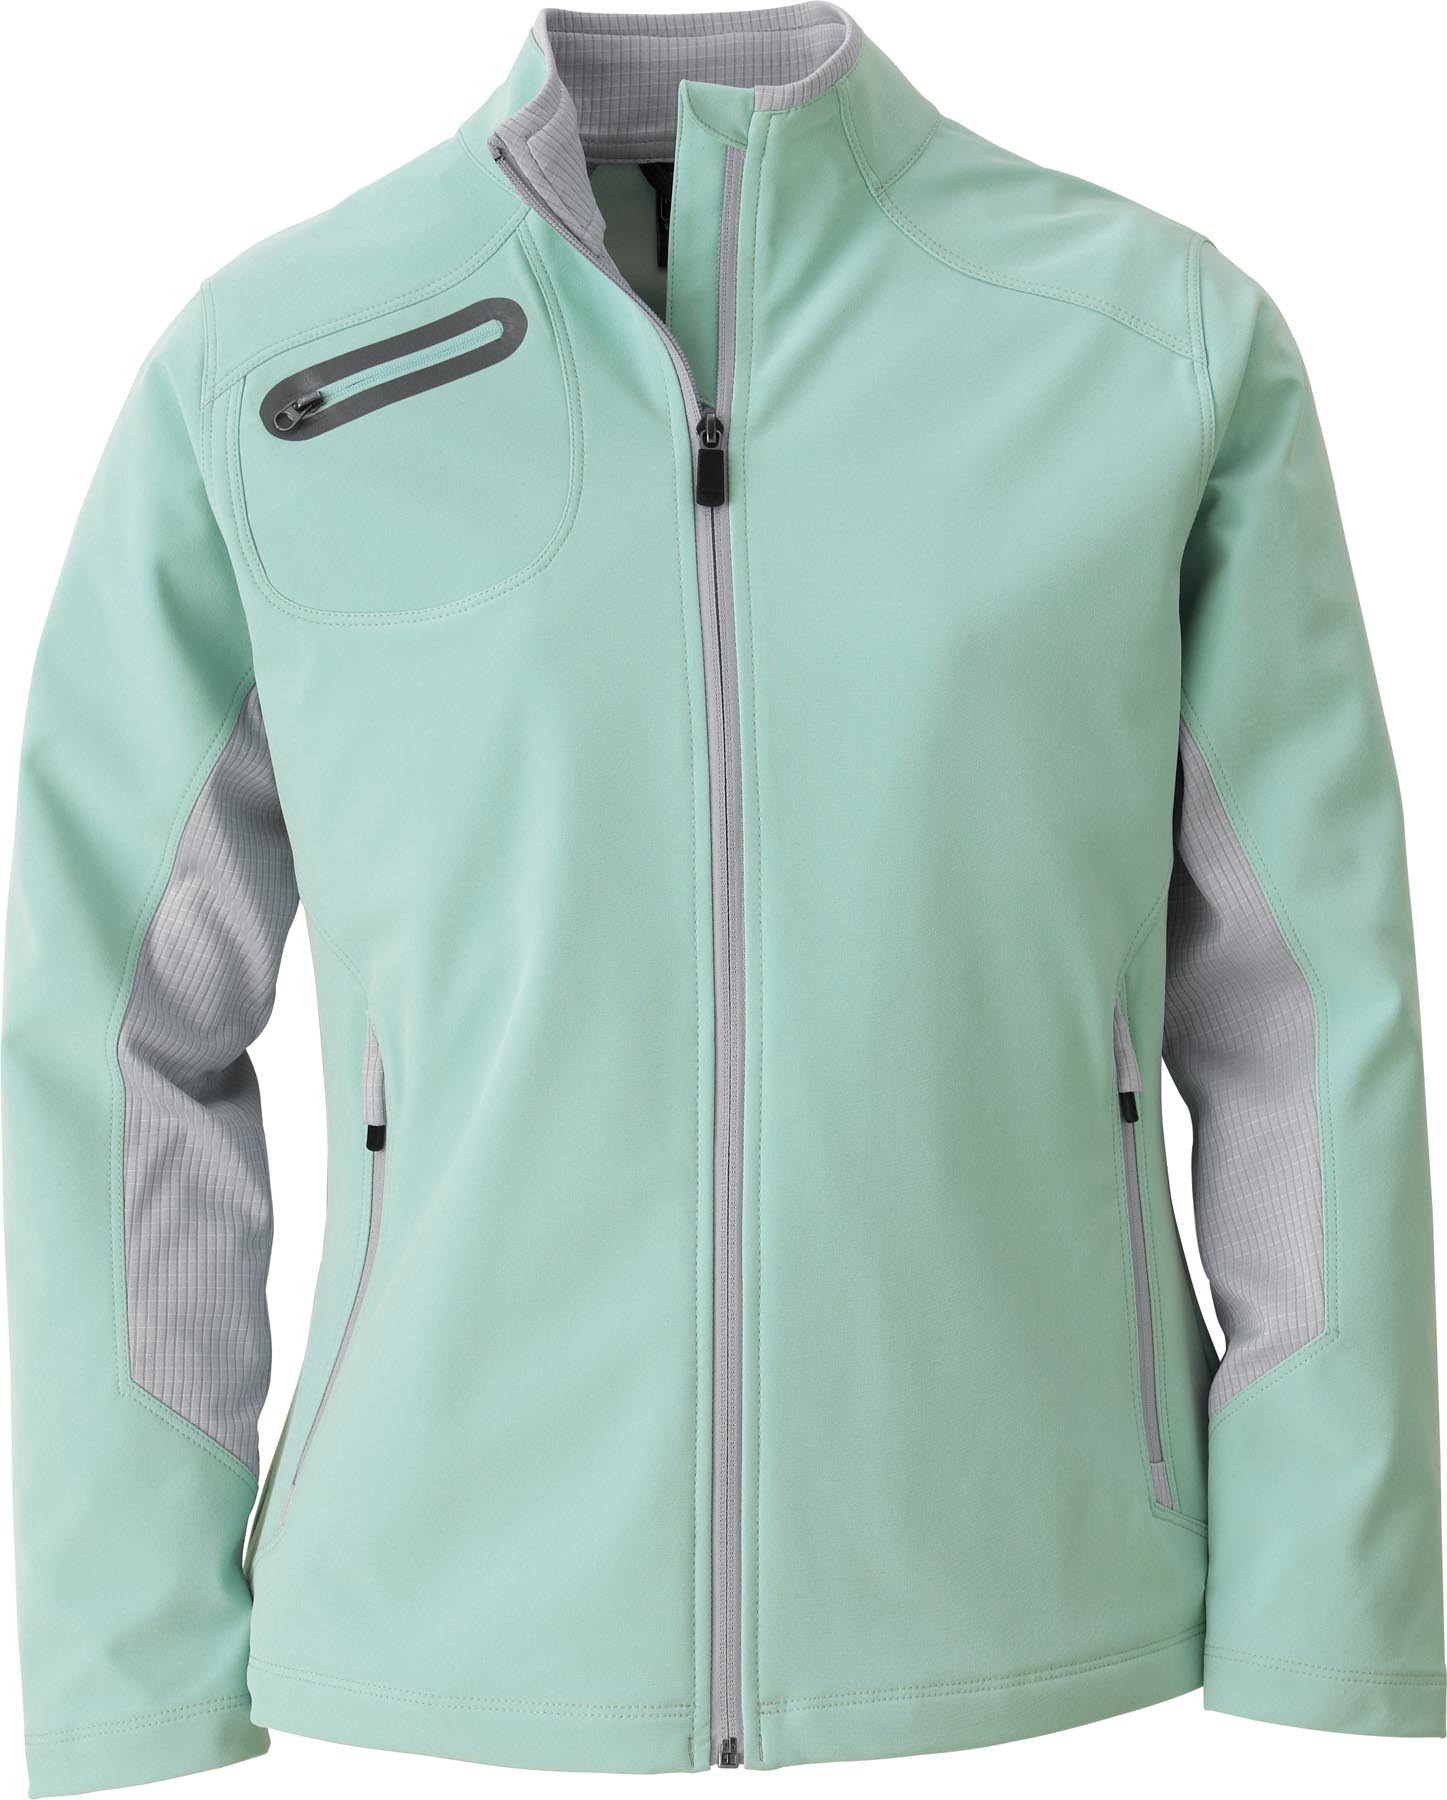 Ash City Lightweight 78621 - Ladies' 3-Layer Soft Shell ...